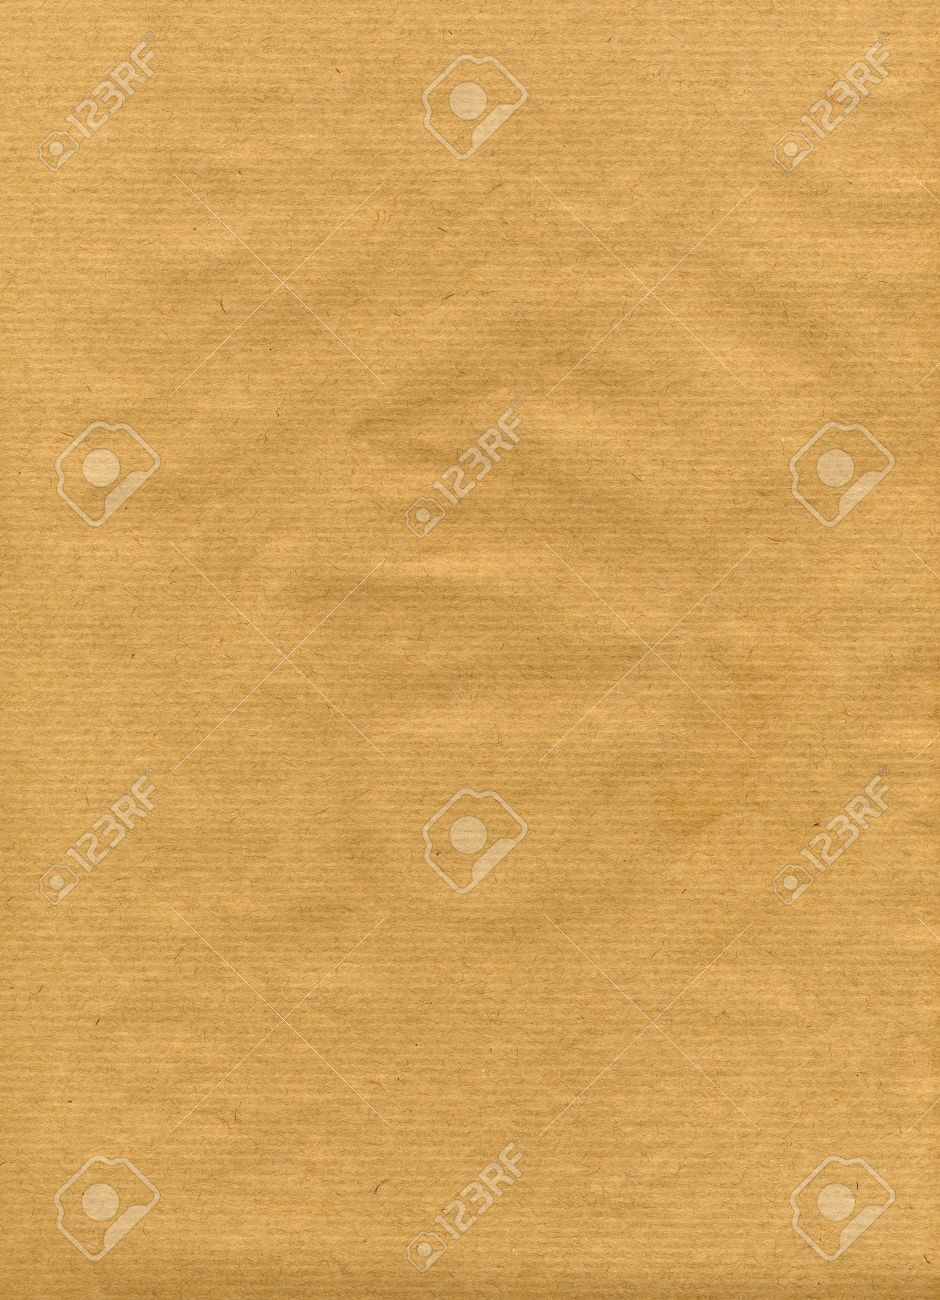 Brown Kraft Paper Background. High Resolution Stock Photo, Picture ...